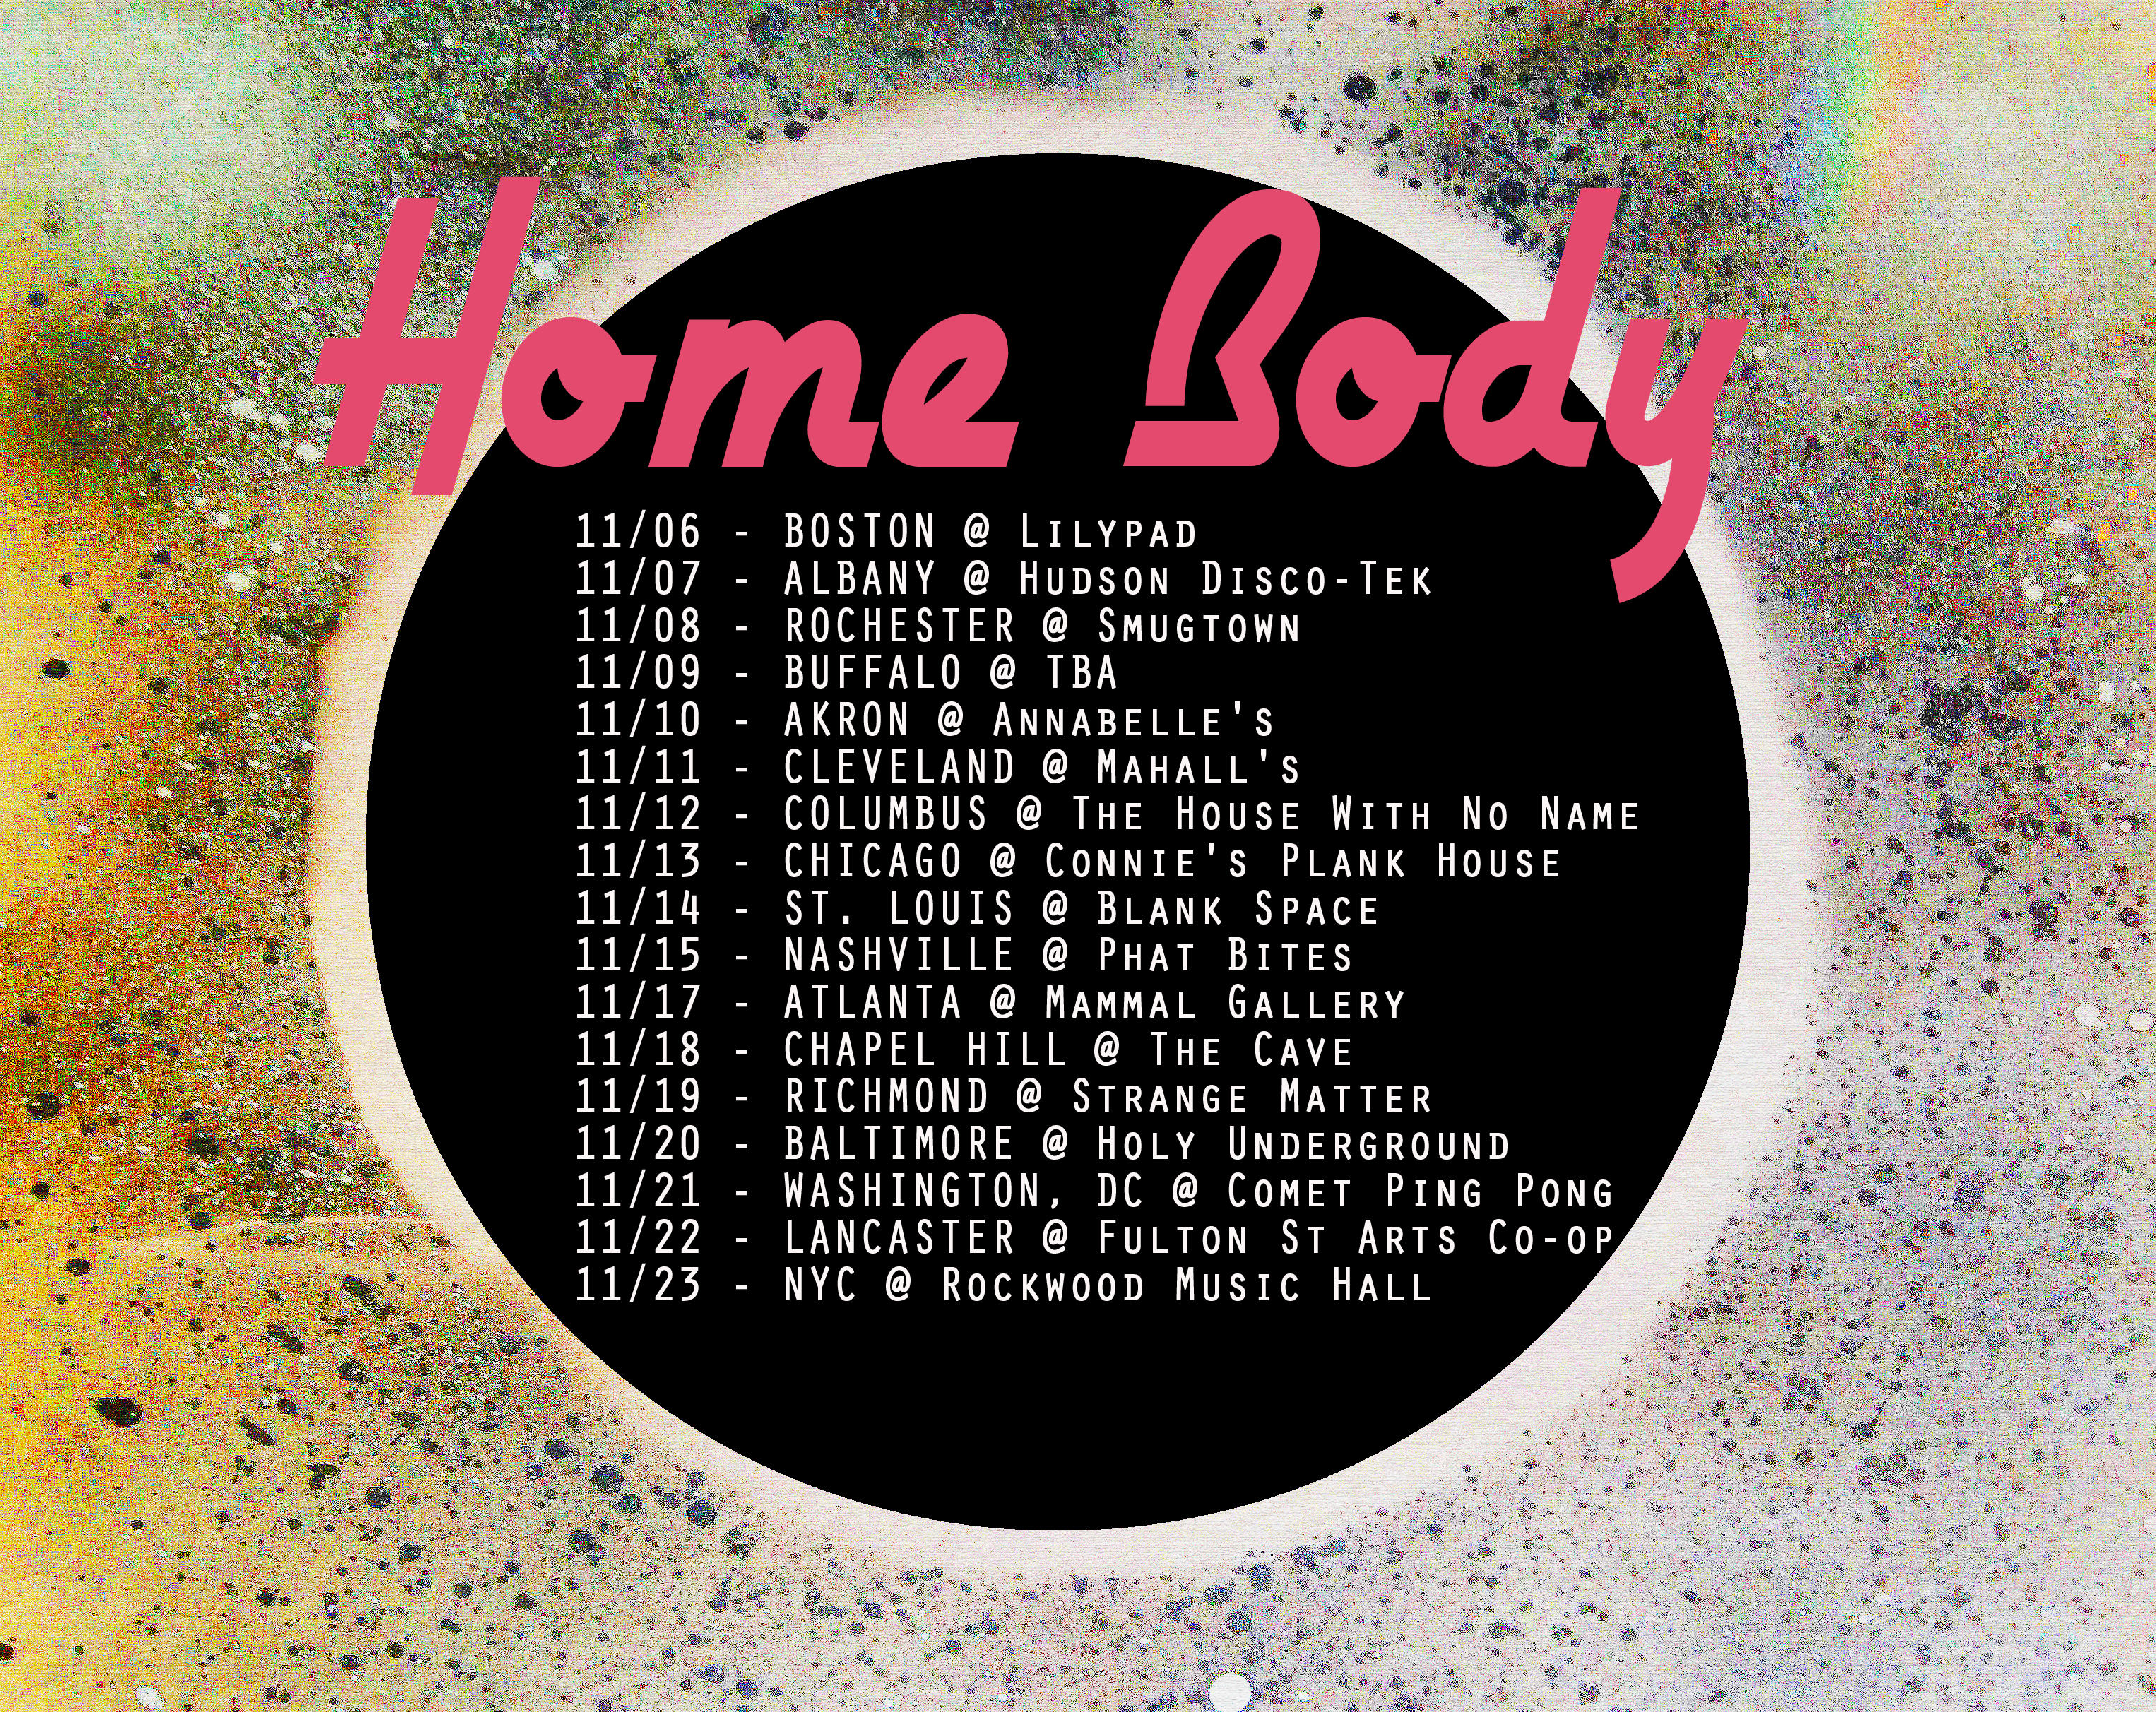 fall14-tour-dates